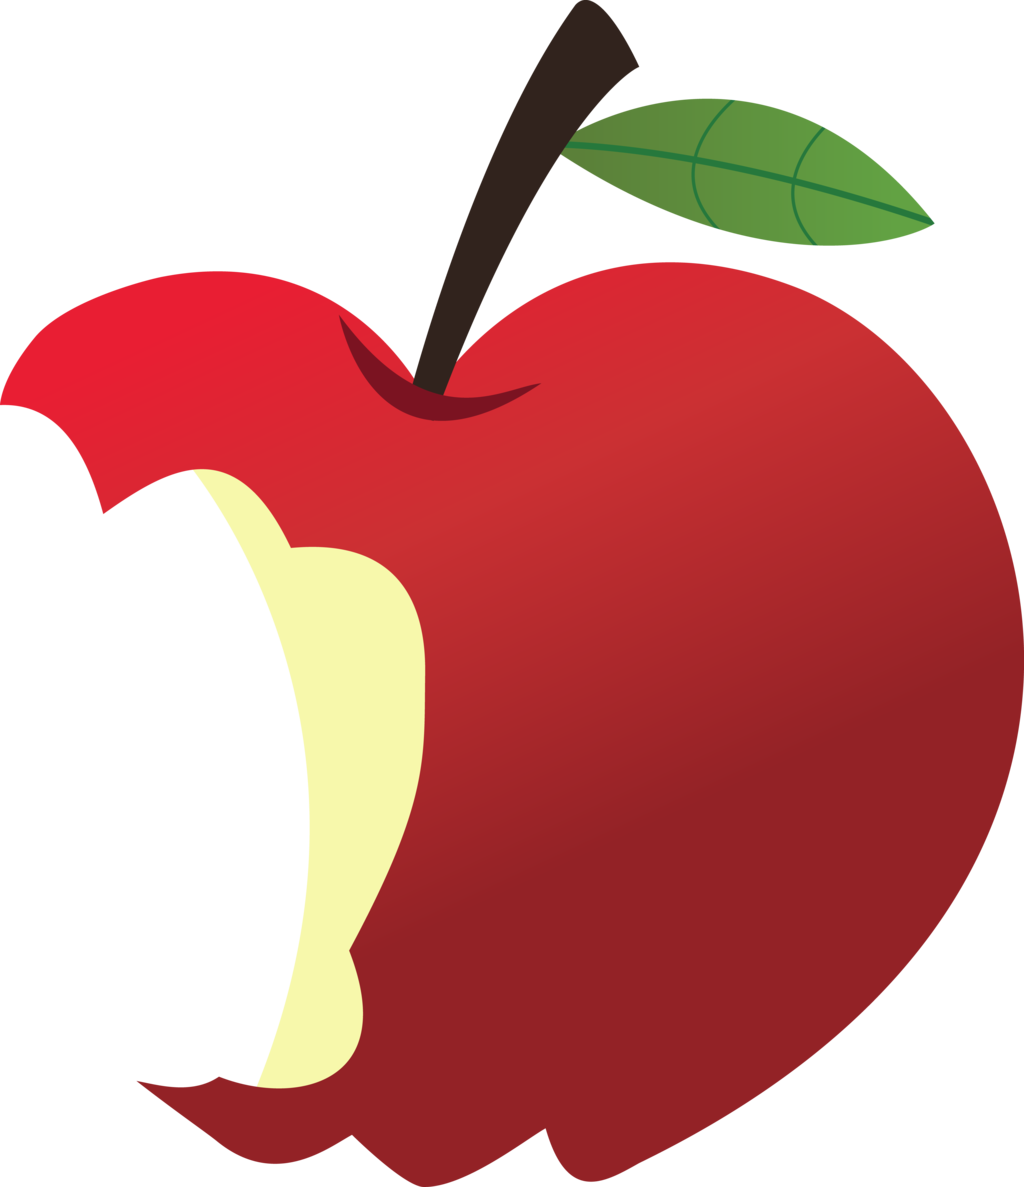 Apples vector bitten. Collection of free clipart